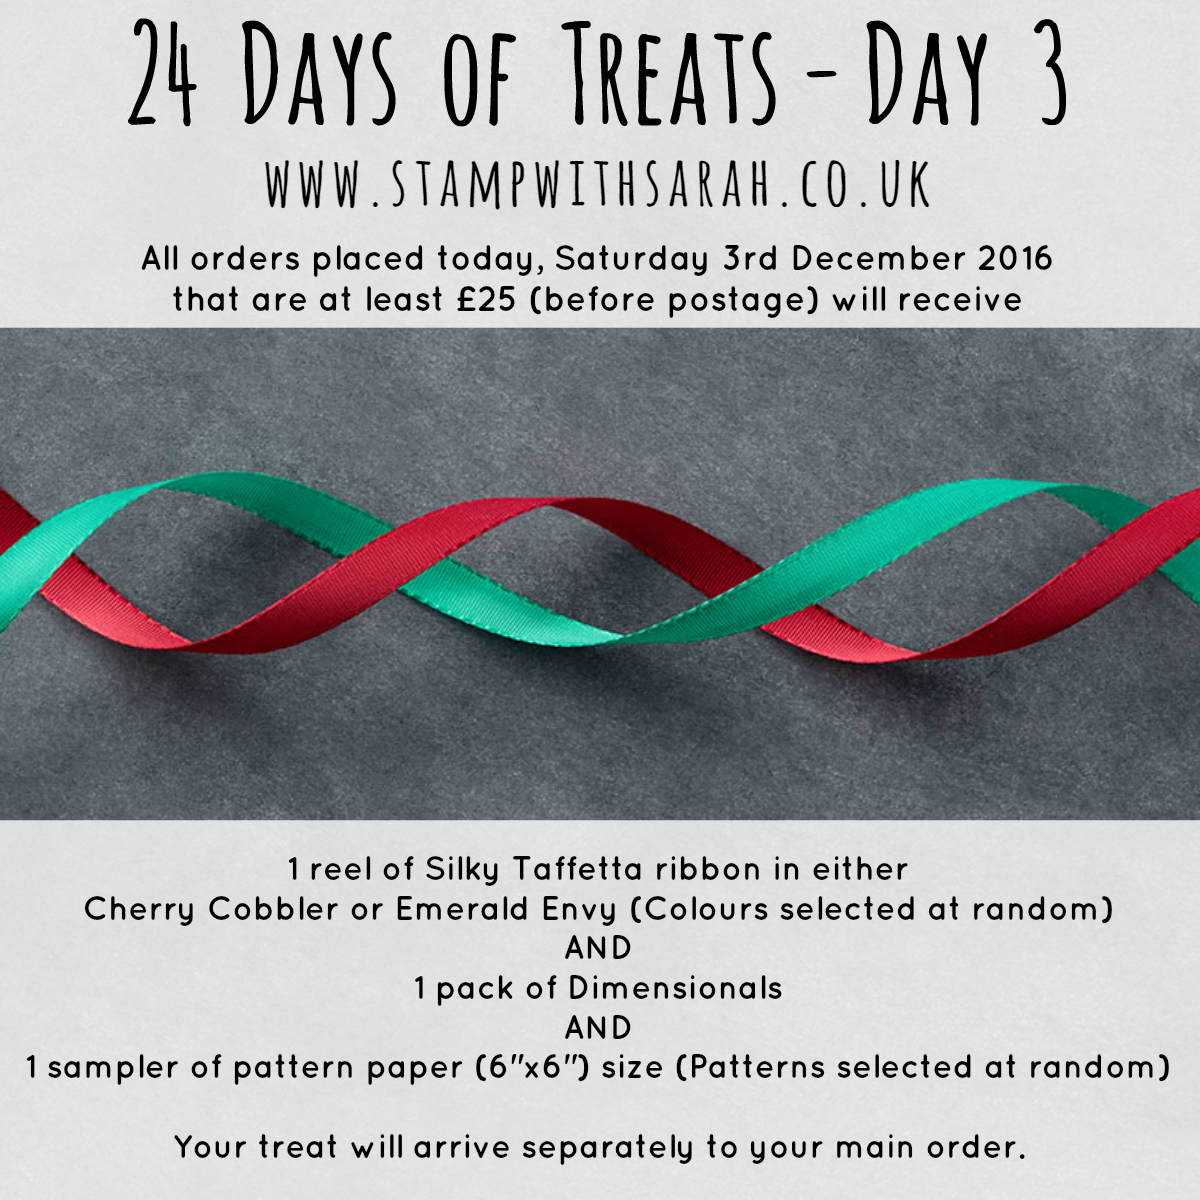 24-days-of-treats-day-3